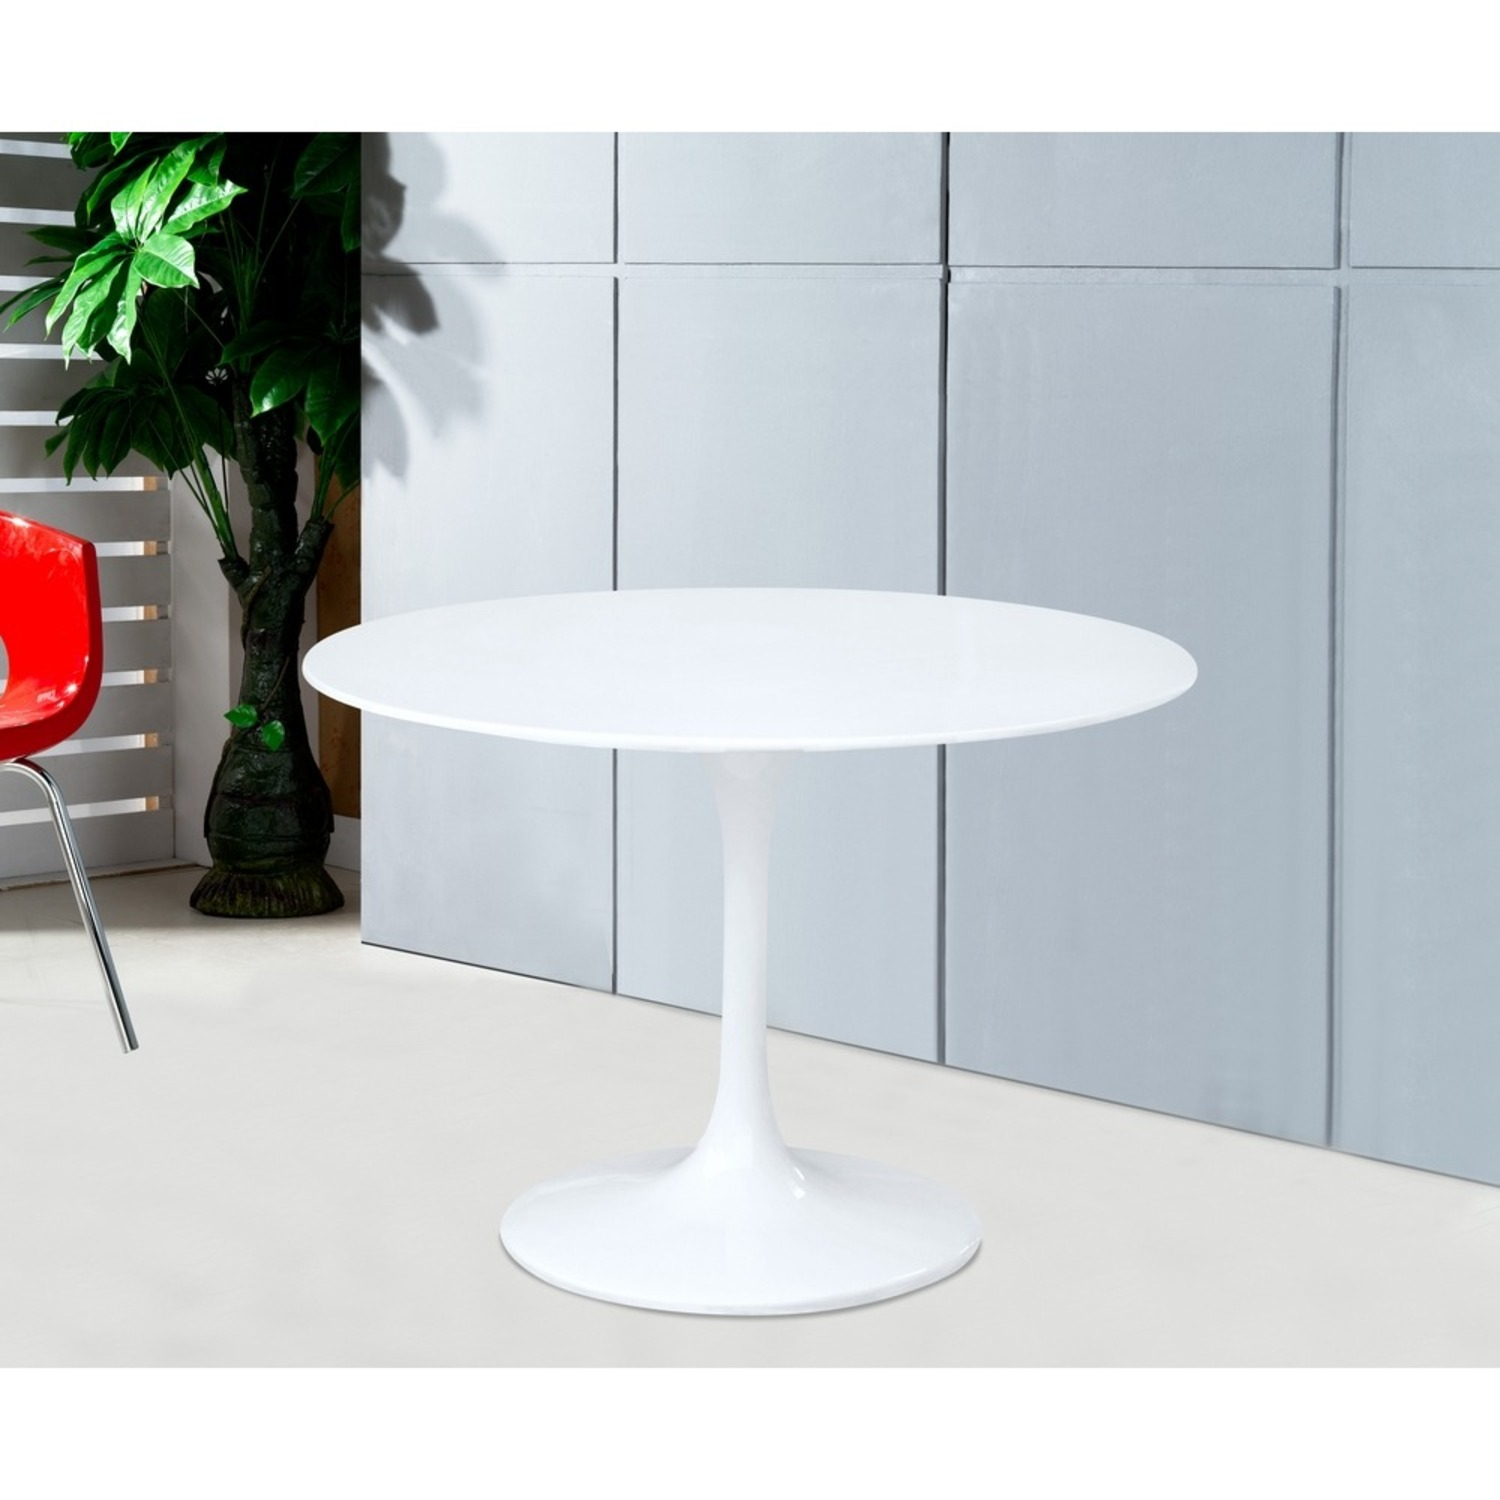 36-Inch Dining Table Molded In White Fiberglass - image-4